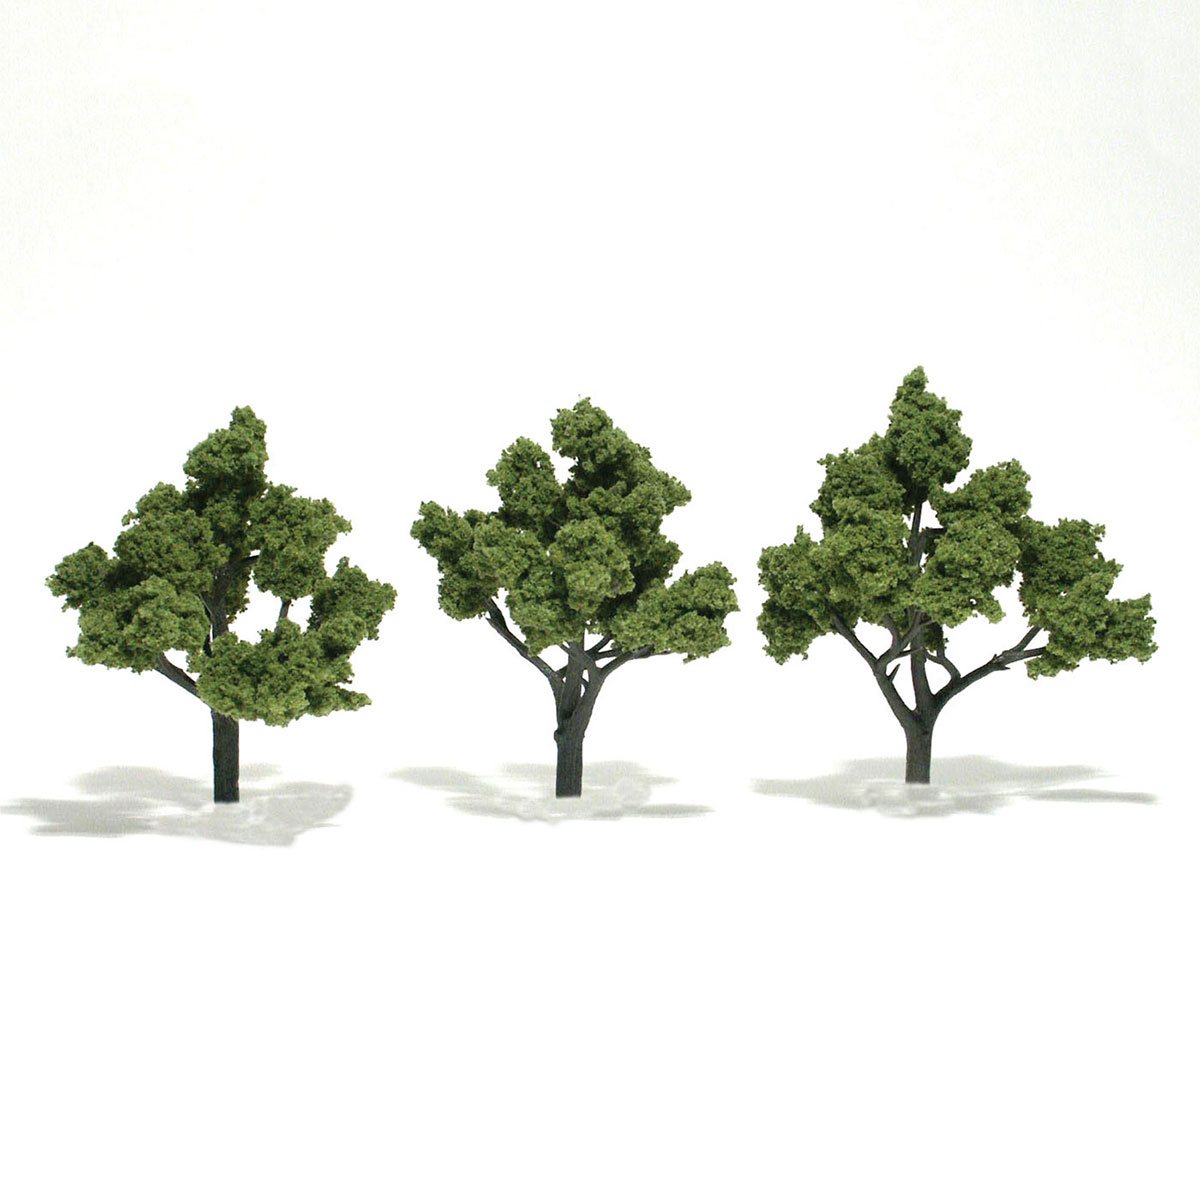 Realistic Trees Medium Green 5-6 Inch 2 Woodland Scenics TR1513 WOO